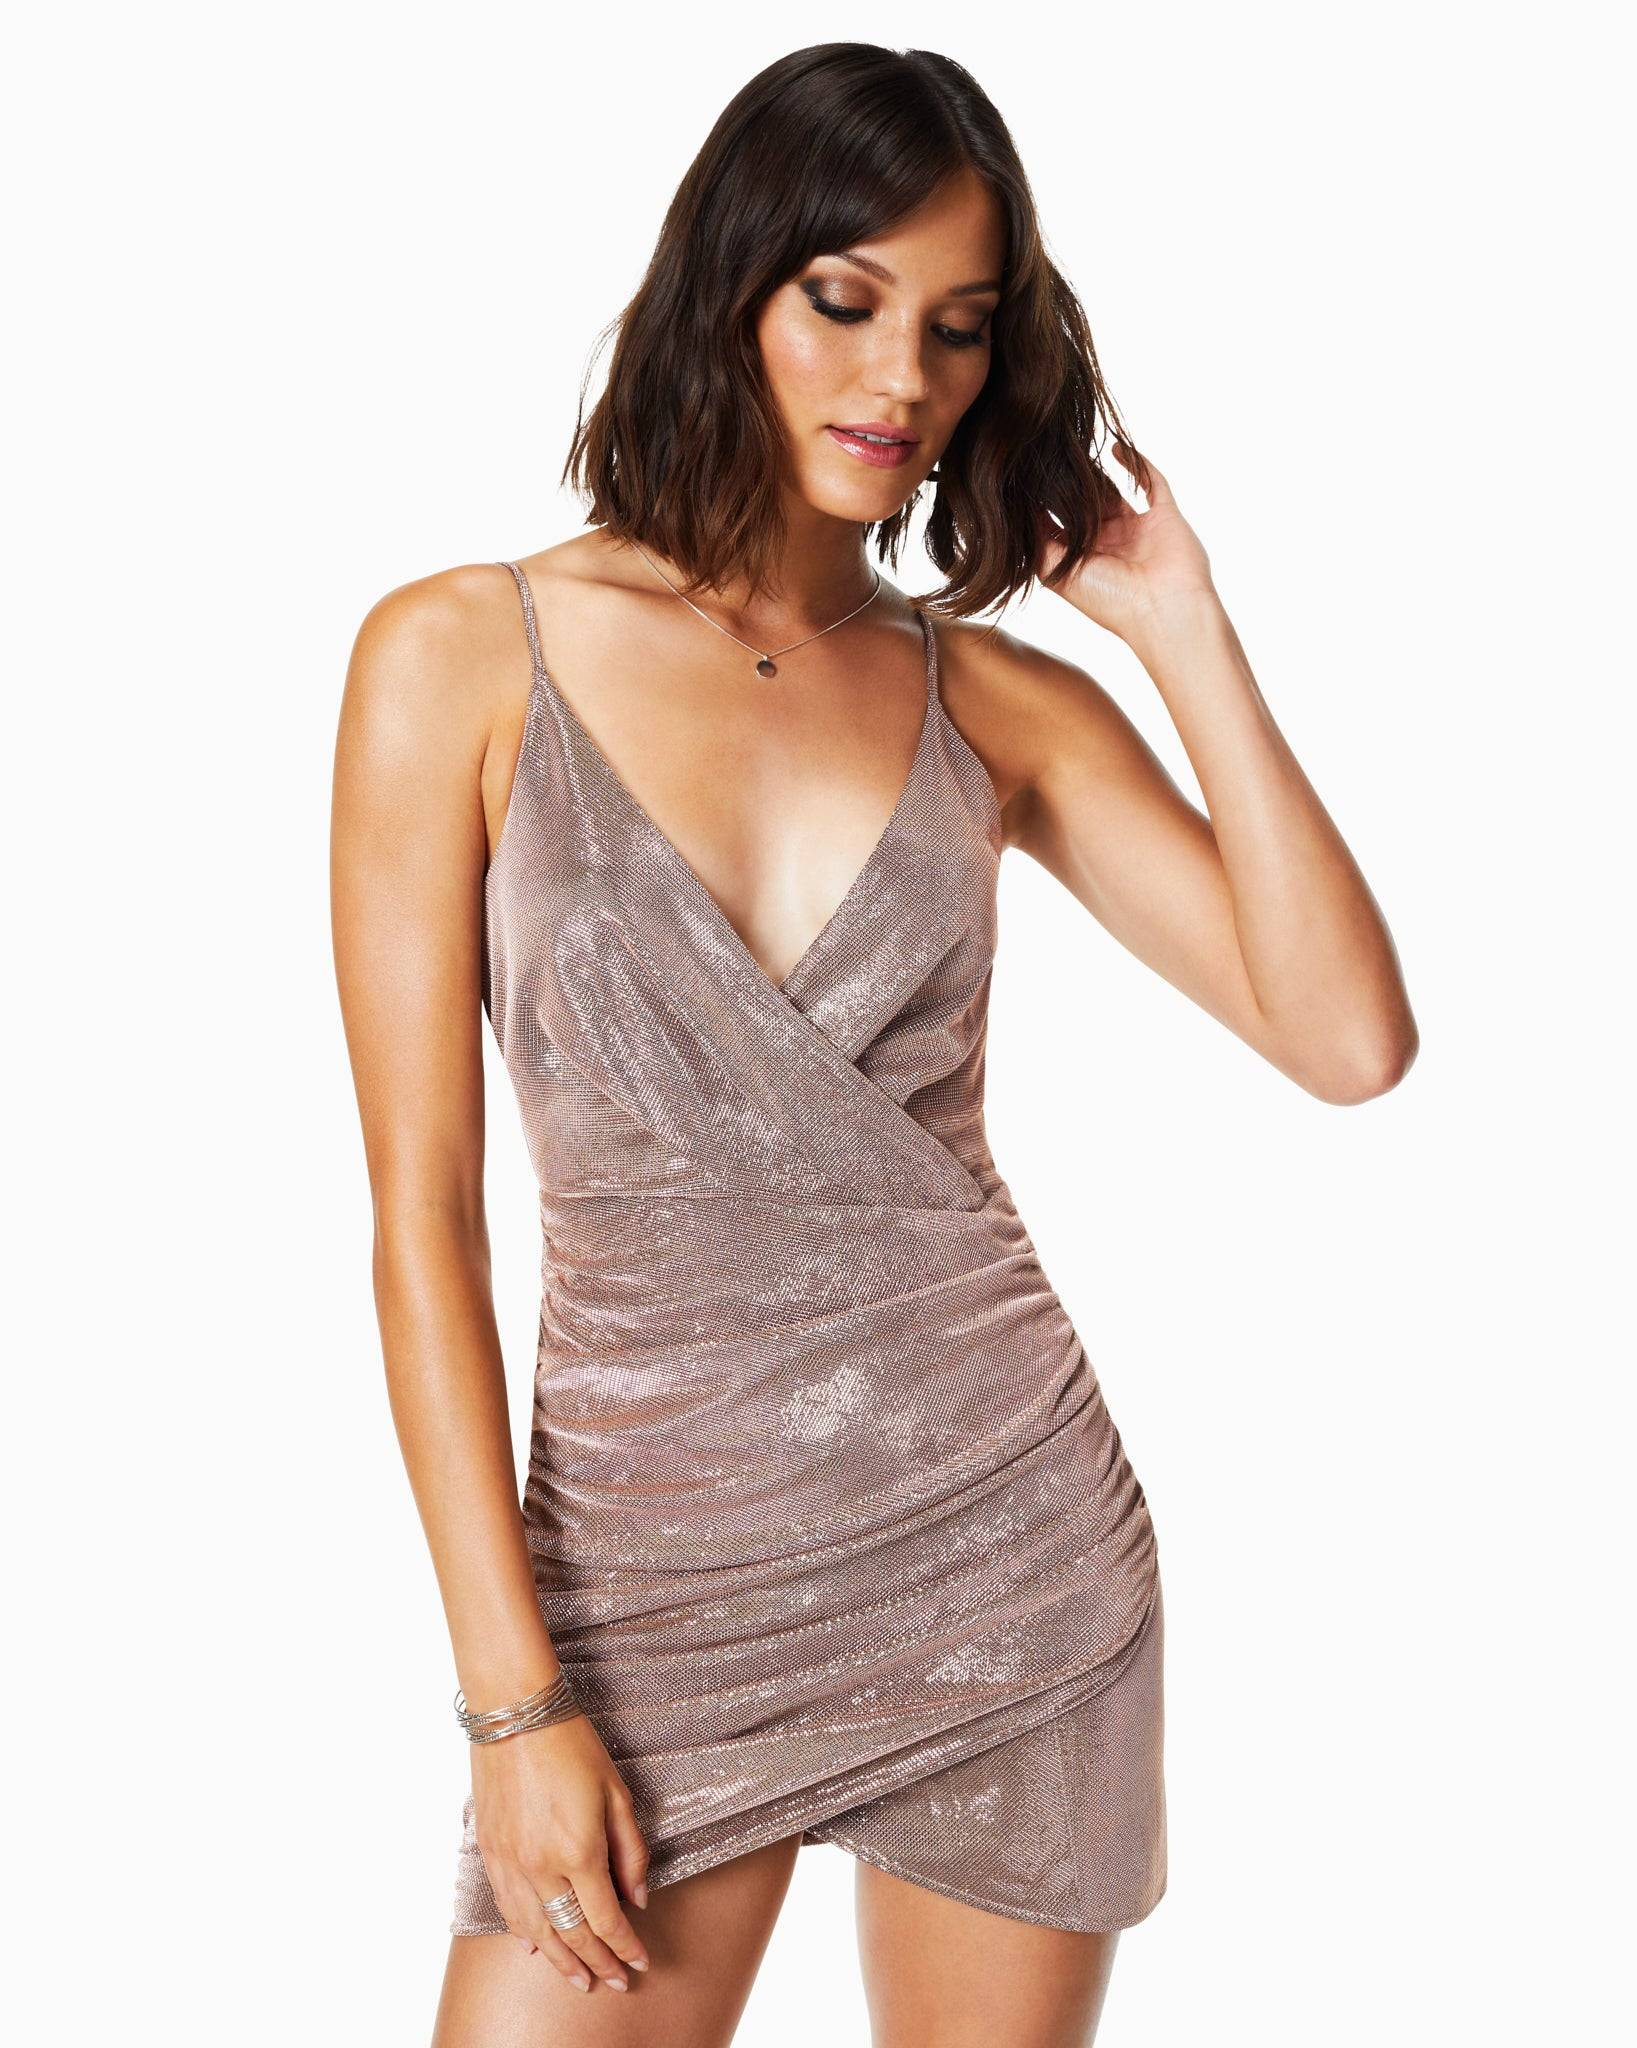 Madilyn Ruched Mini Dress in Holiday Blush - Holiday Blush - Size: 8